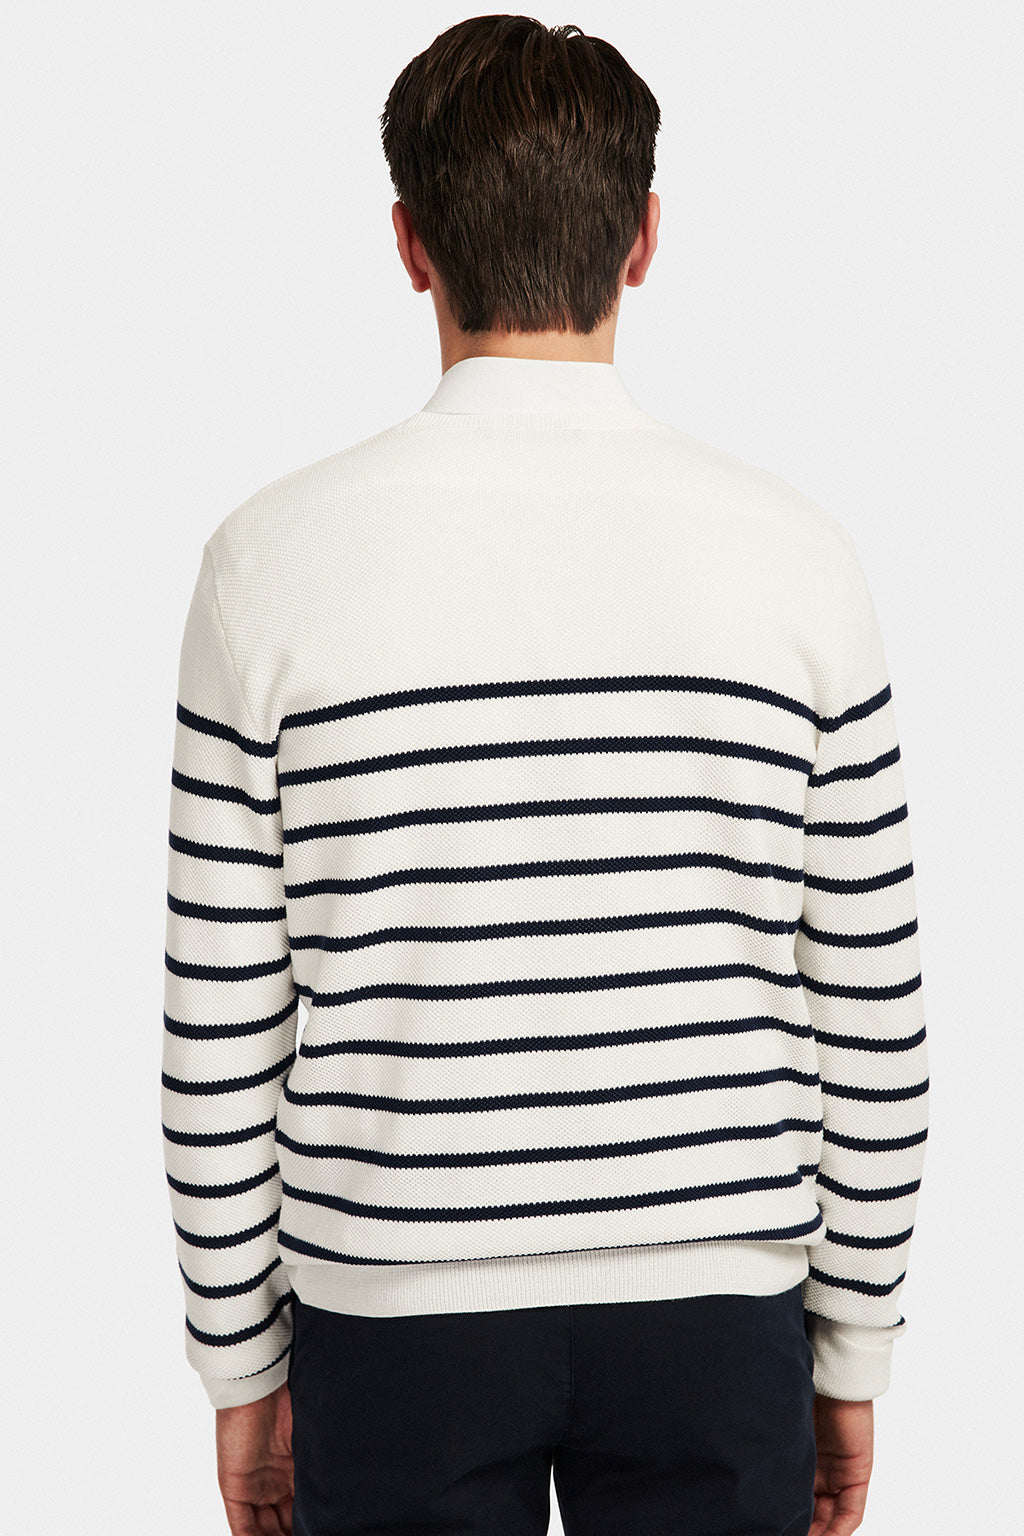 Jersey Navy Stripes Jersey Crudo-Marino